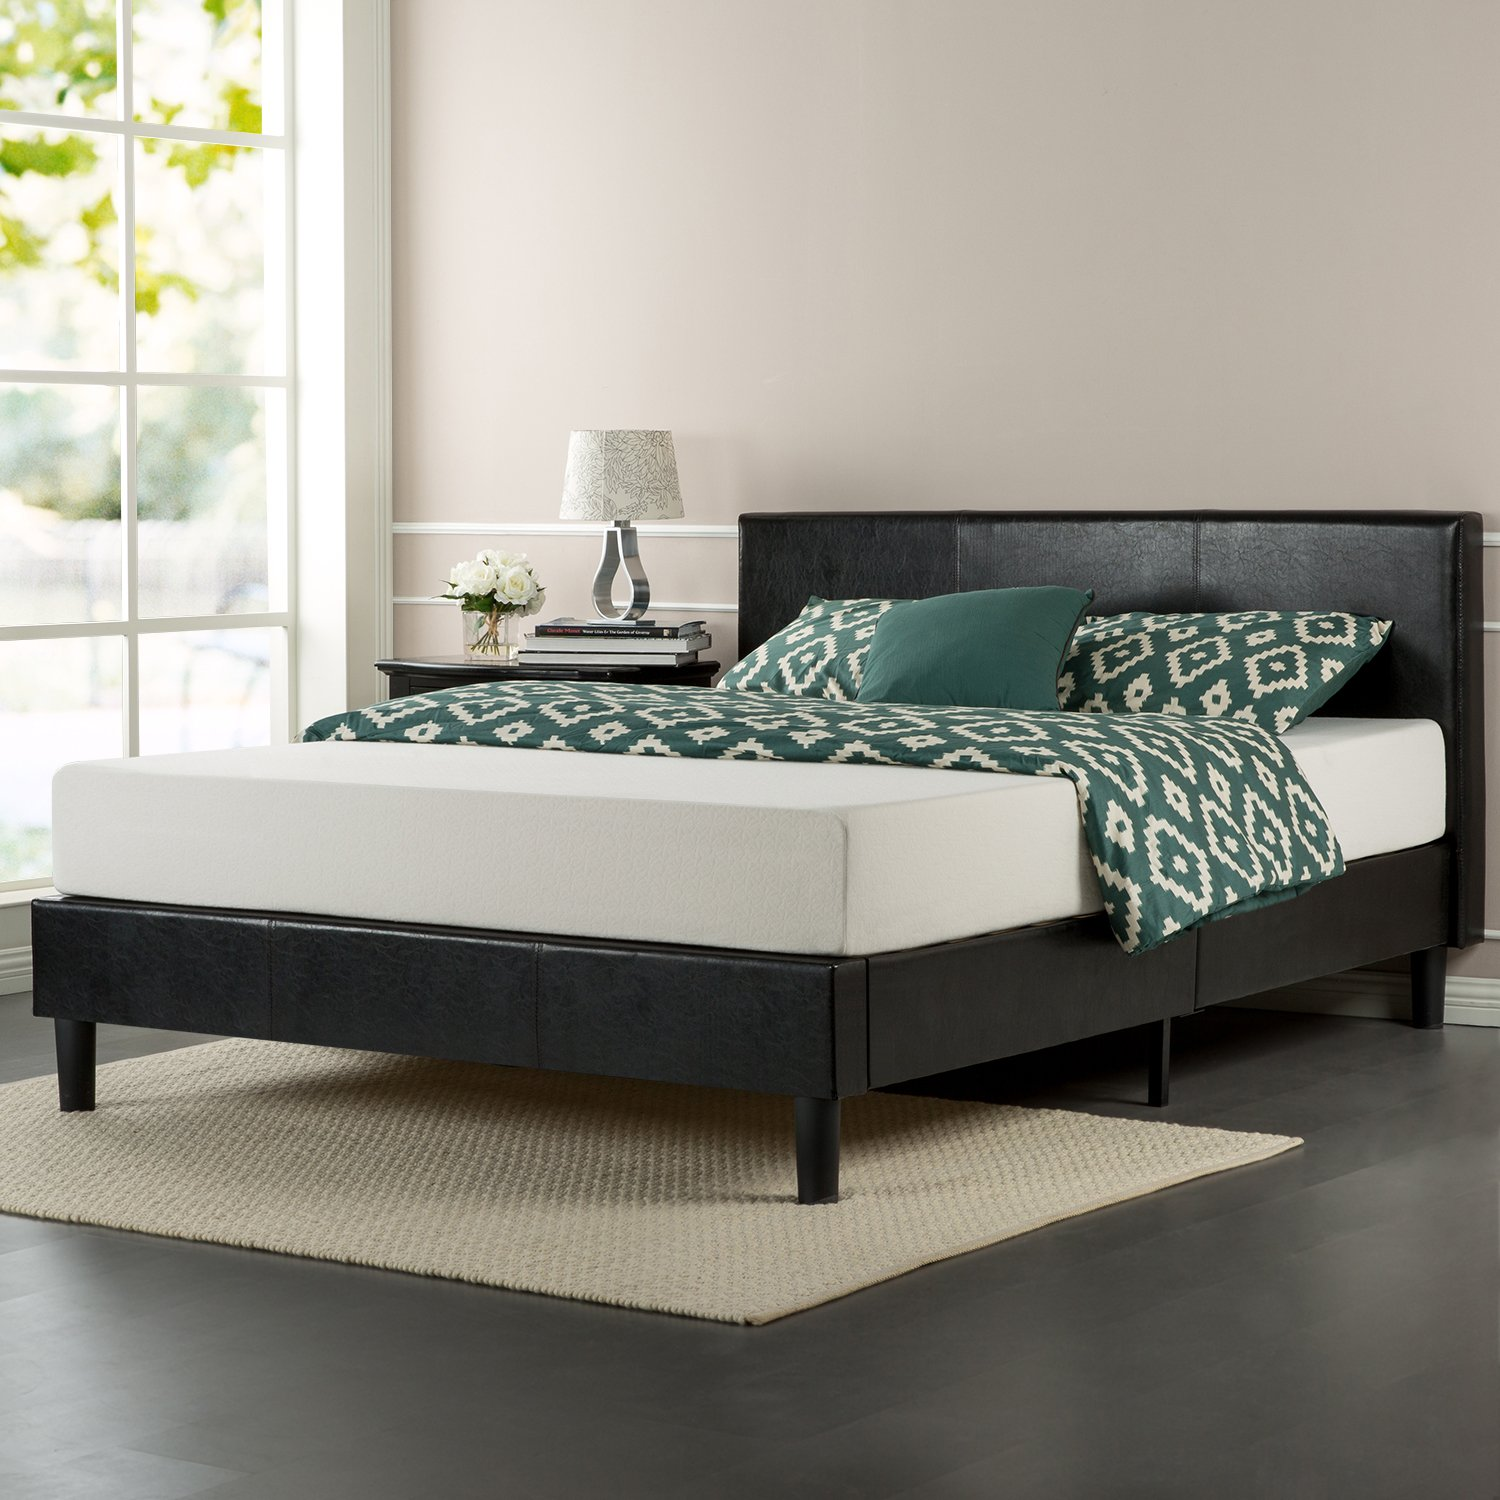 amazoncom zinus faux leather upholstered platform bed with  - amazoncom zinus faux leather upholstered platform bed with wooden slatsqueen kitchen  dining